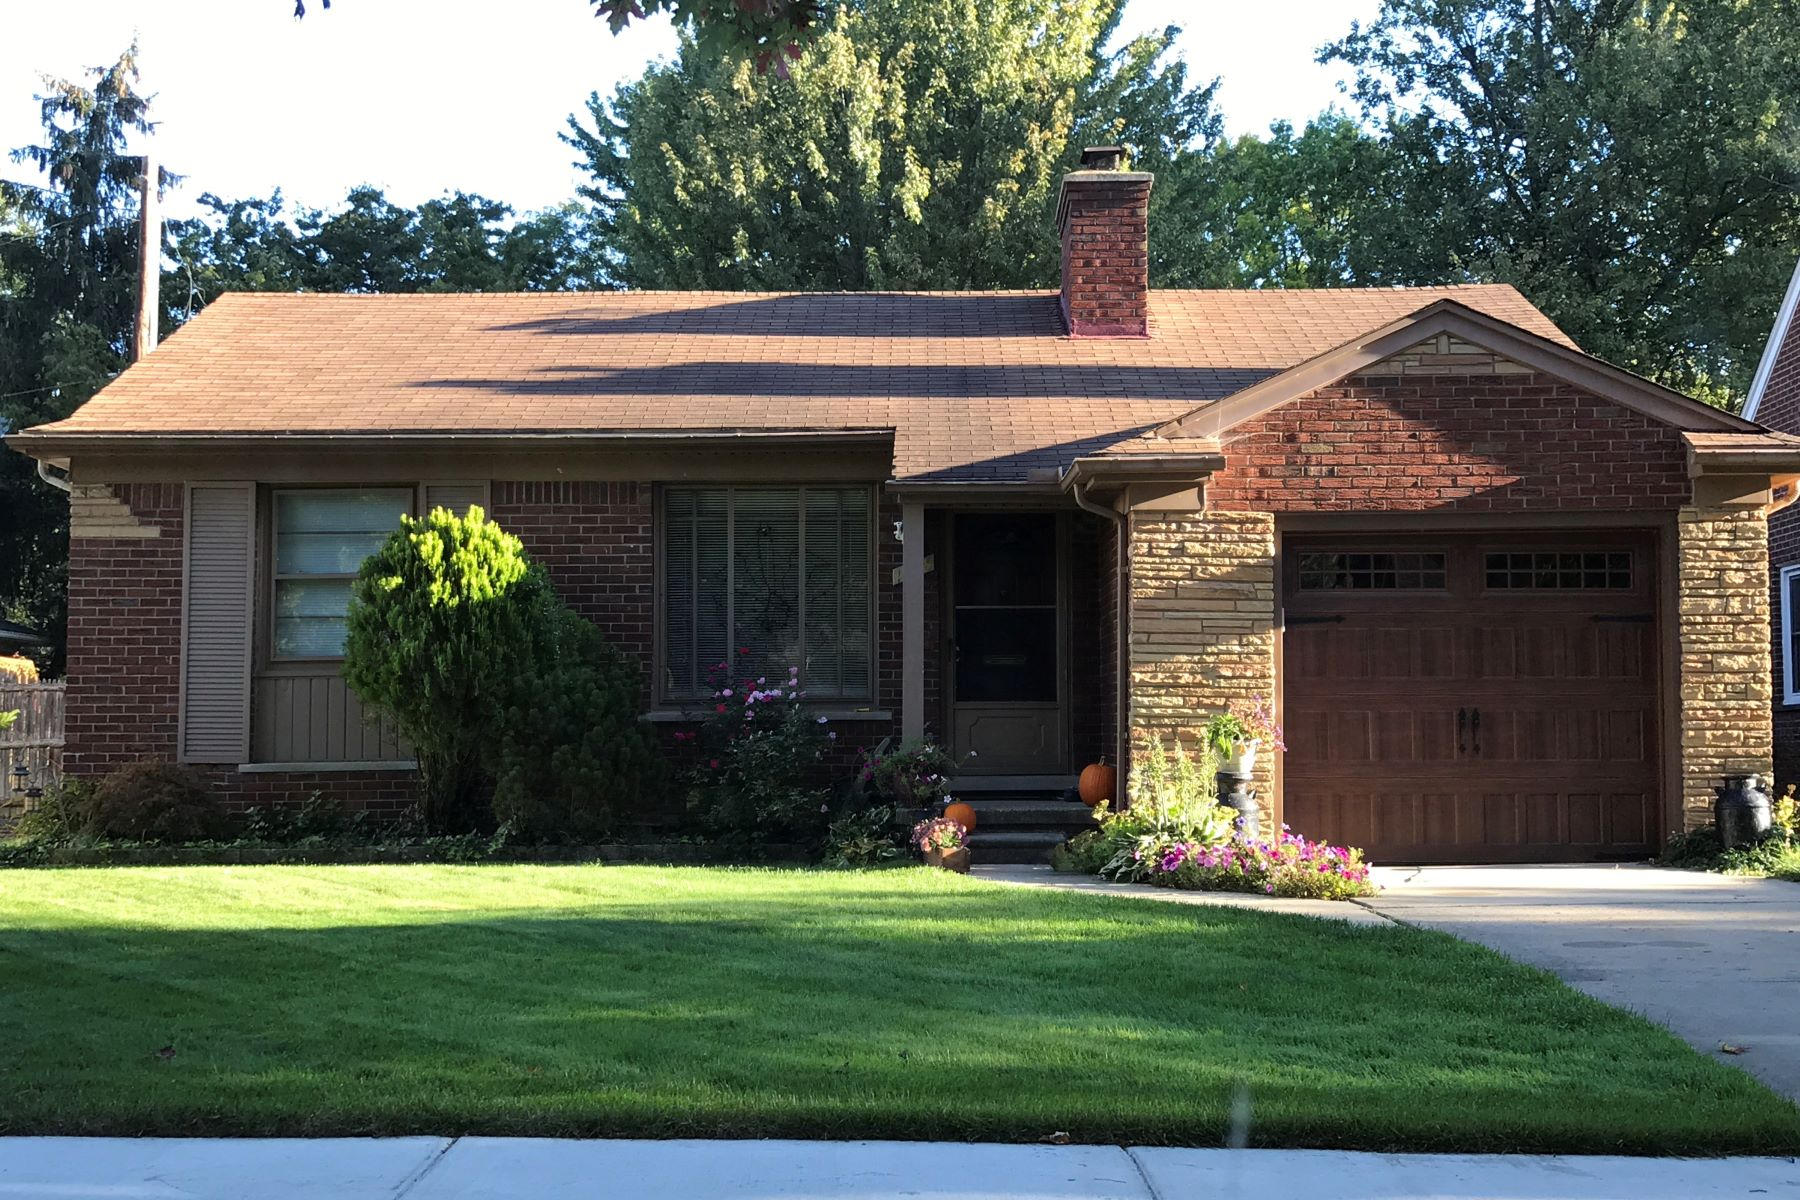 Single Family Homes for Active at Grosse Pointe Woods 1248 Anita Grosse Pointe Woods, Michigan 48236 United States